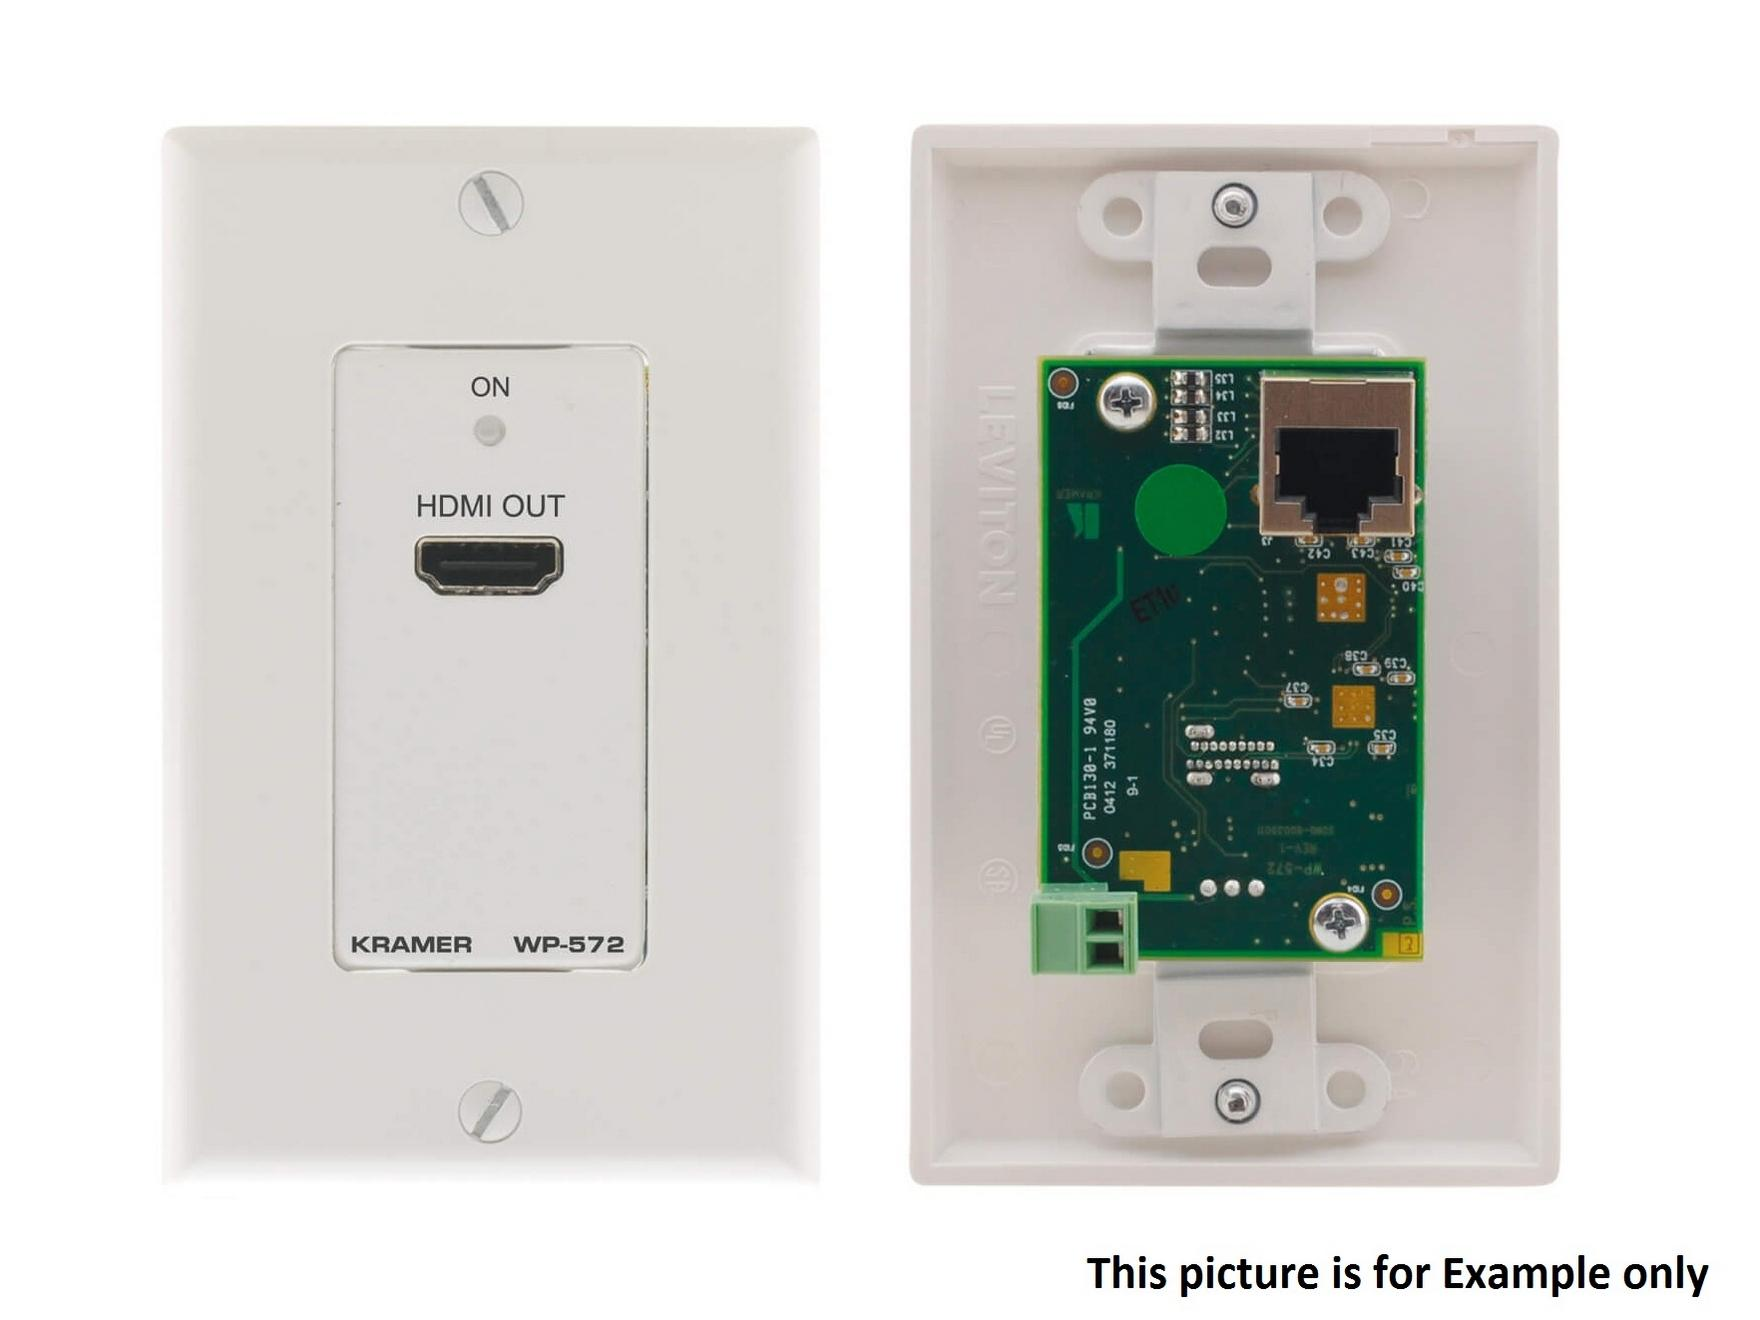 WP-572(B) Active Wall Plate HDMI over Twisted Pair Extender (Receiver)/Black by Kramer